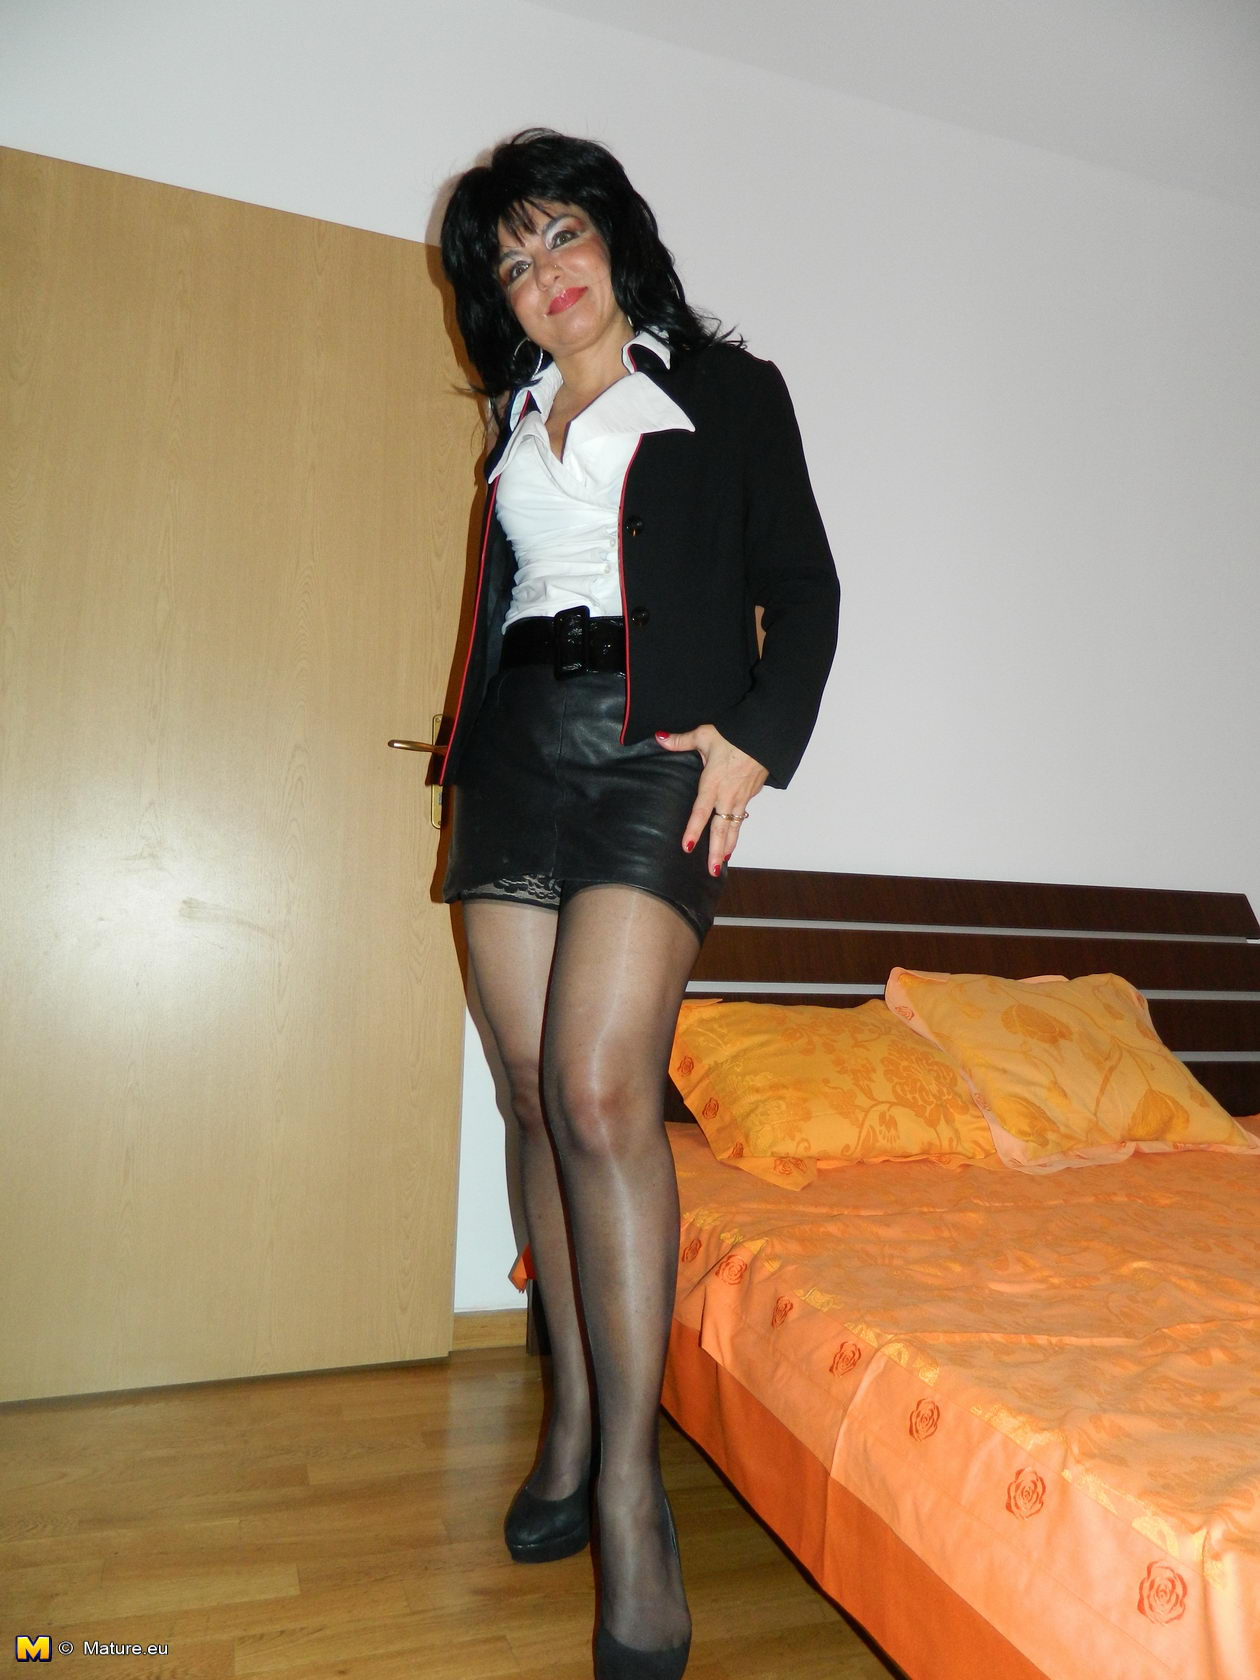 Mature.eu This Housewife Loves Sharing Her Pussy With Us 182511 ...